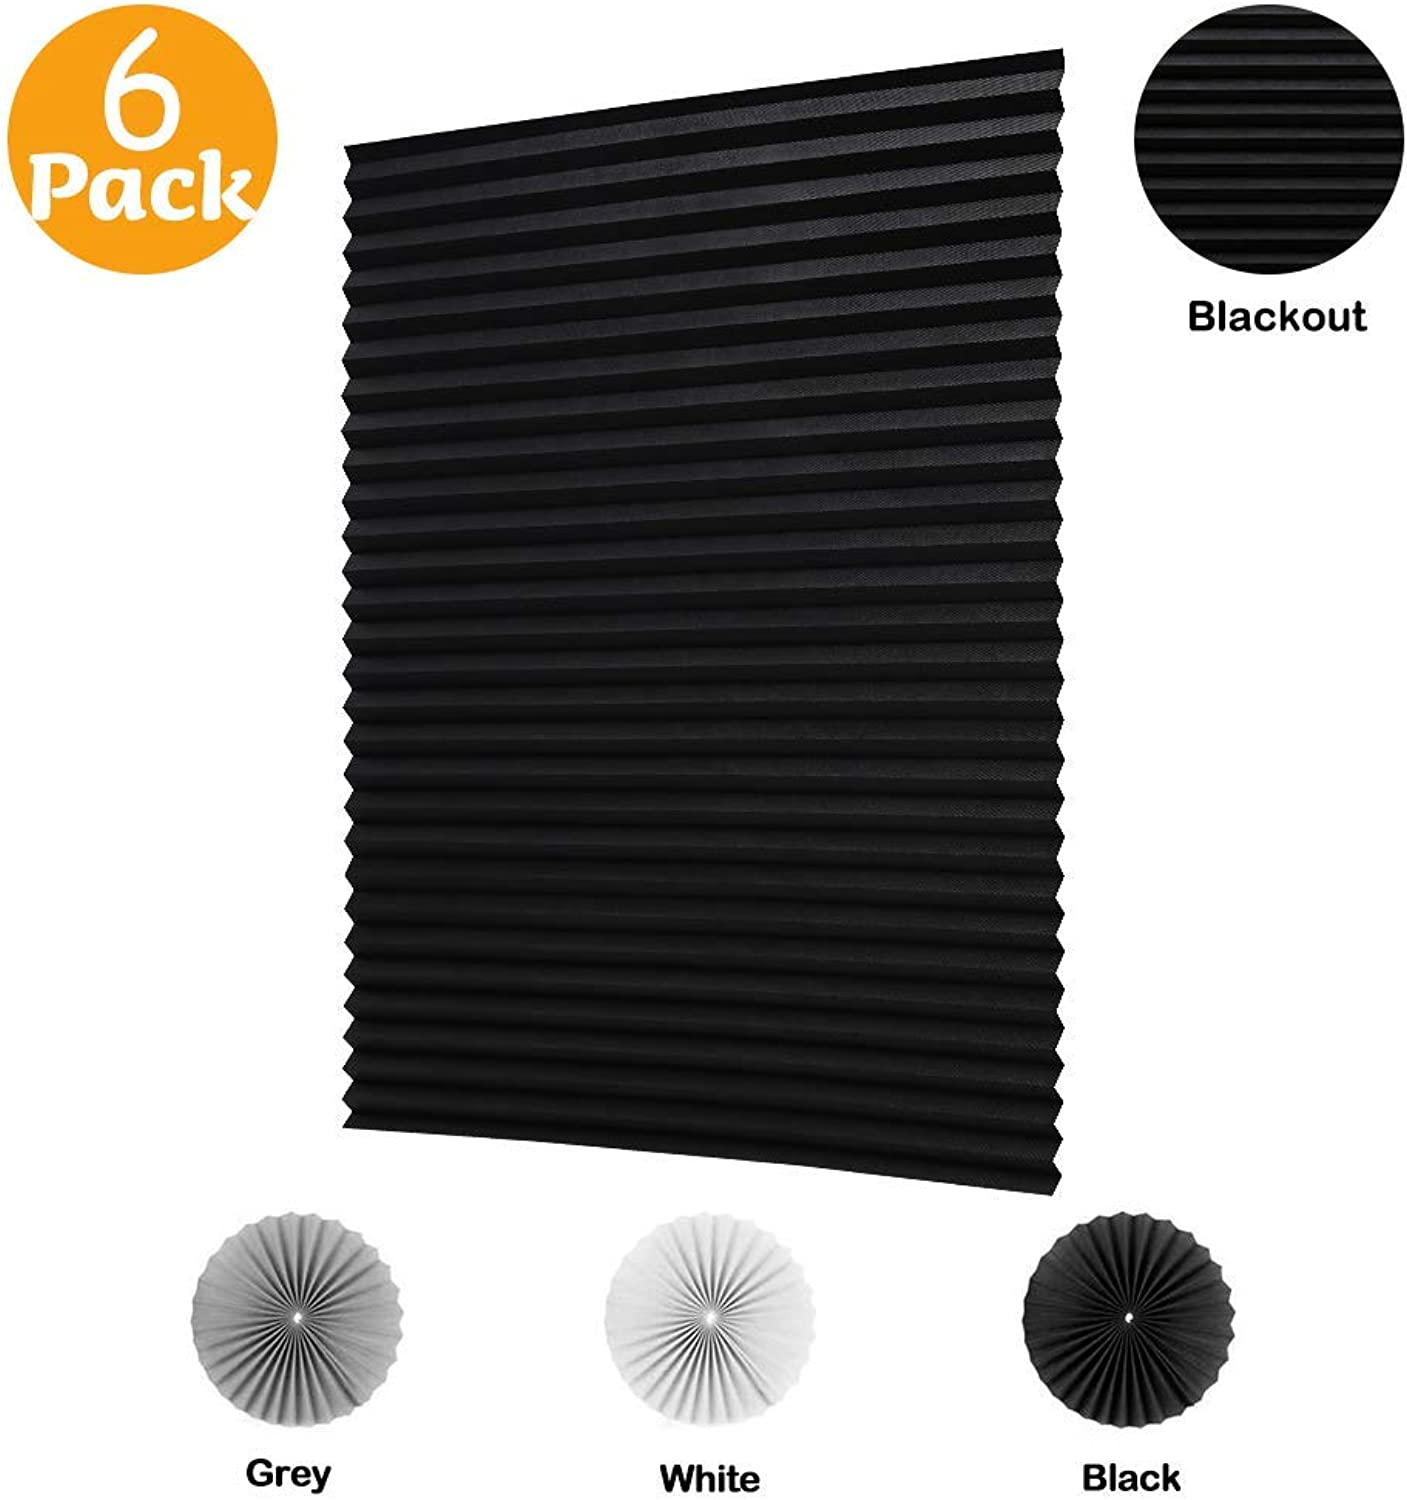 LUCKUP 6 PackCordless Blackout Pleated Fabric Shade, Easy to Cut and Installl, with 12 Clips (36 x72  - 6 Pack, Black)